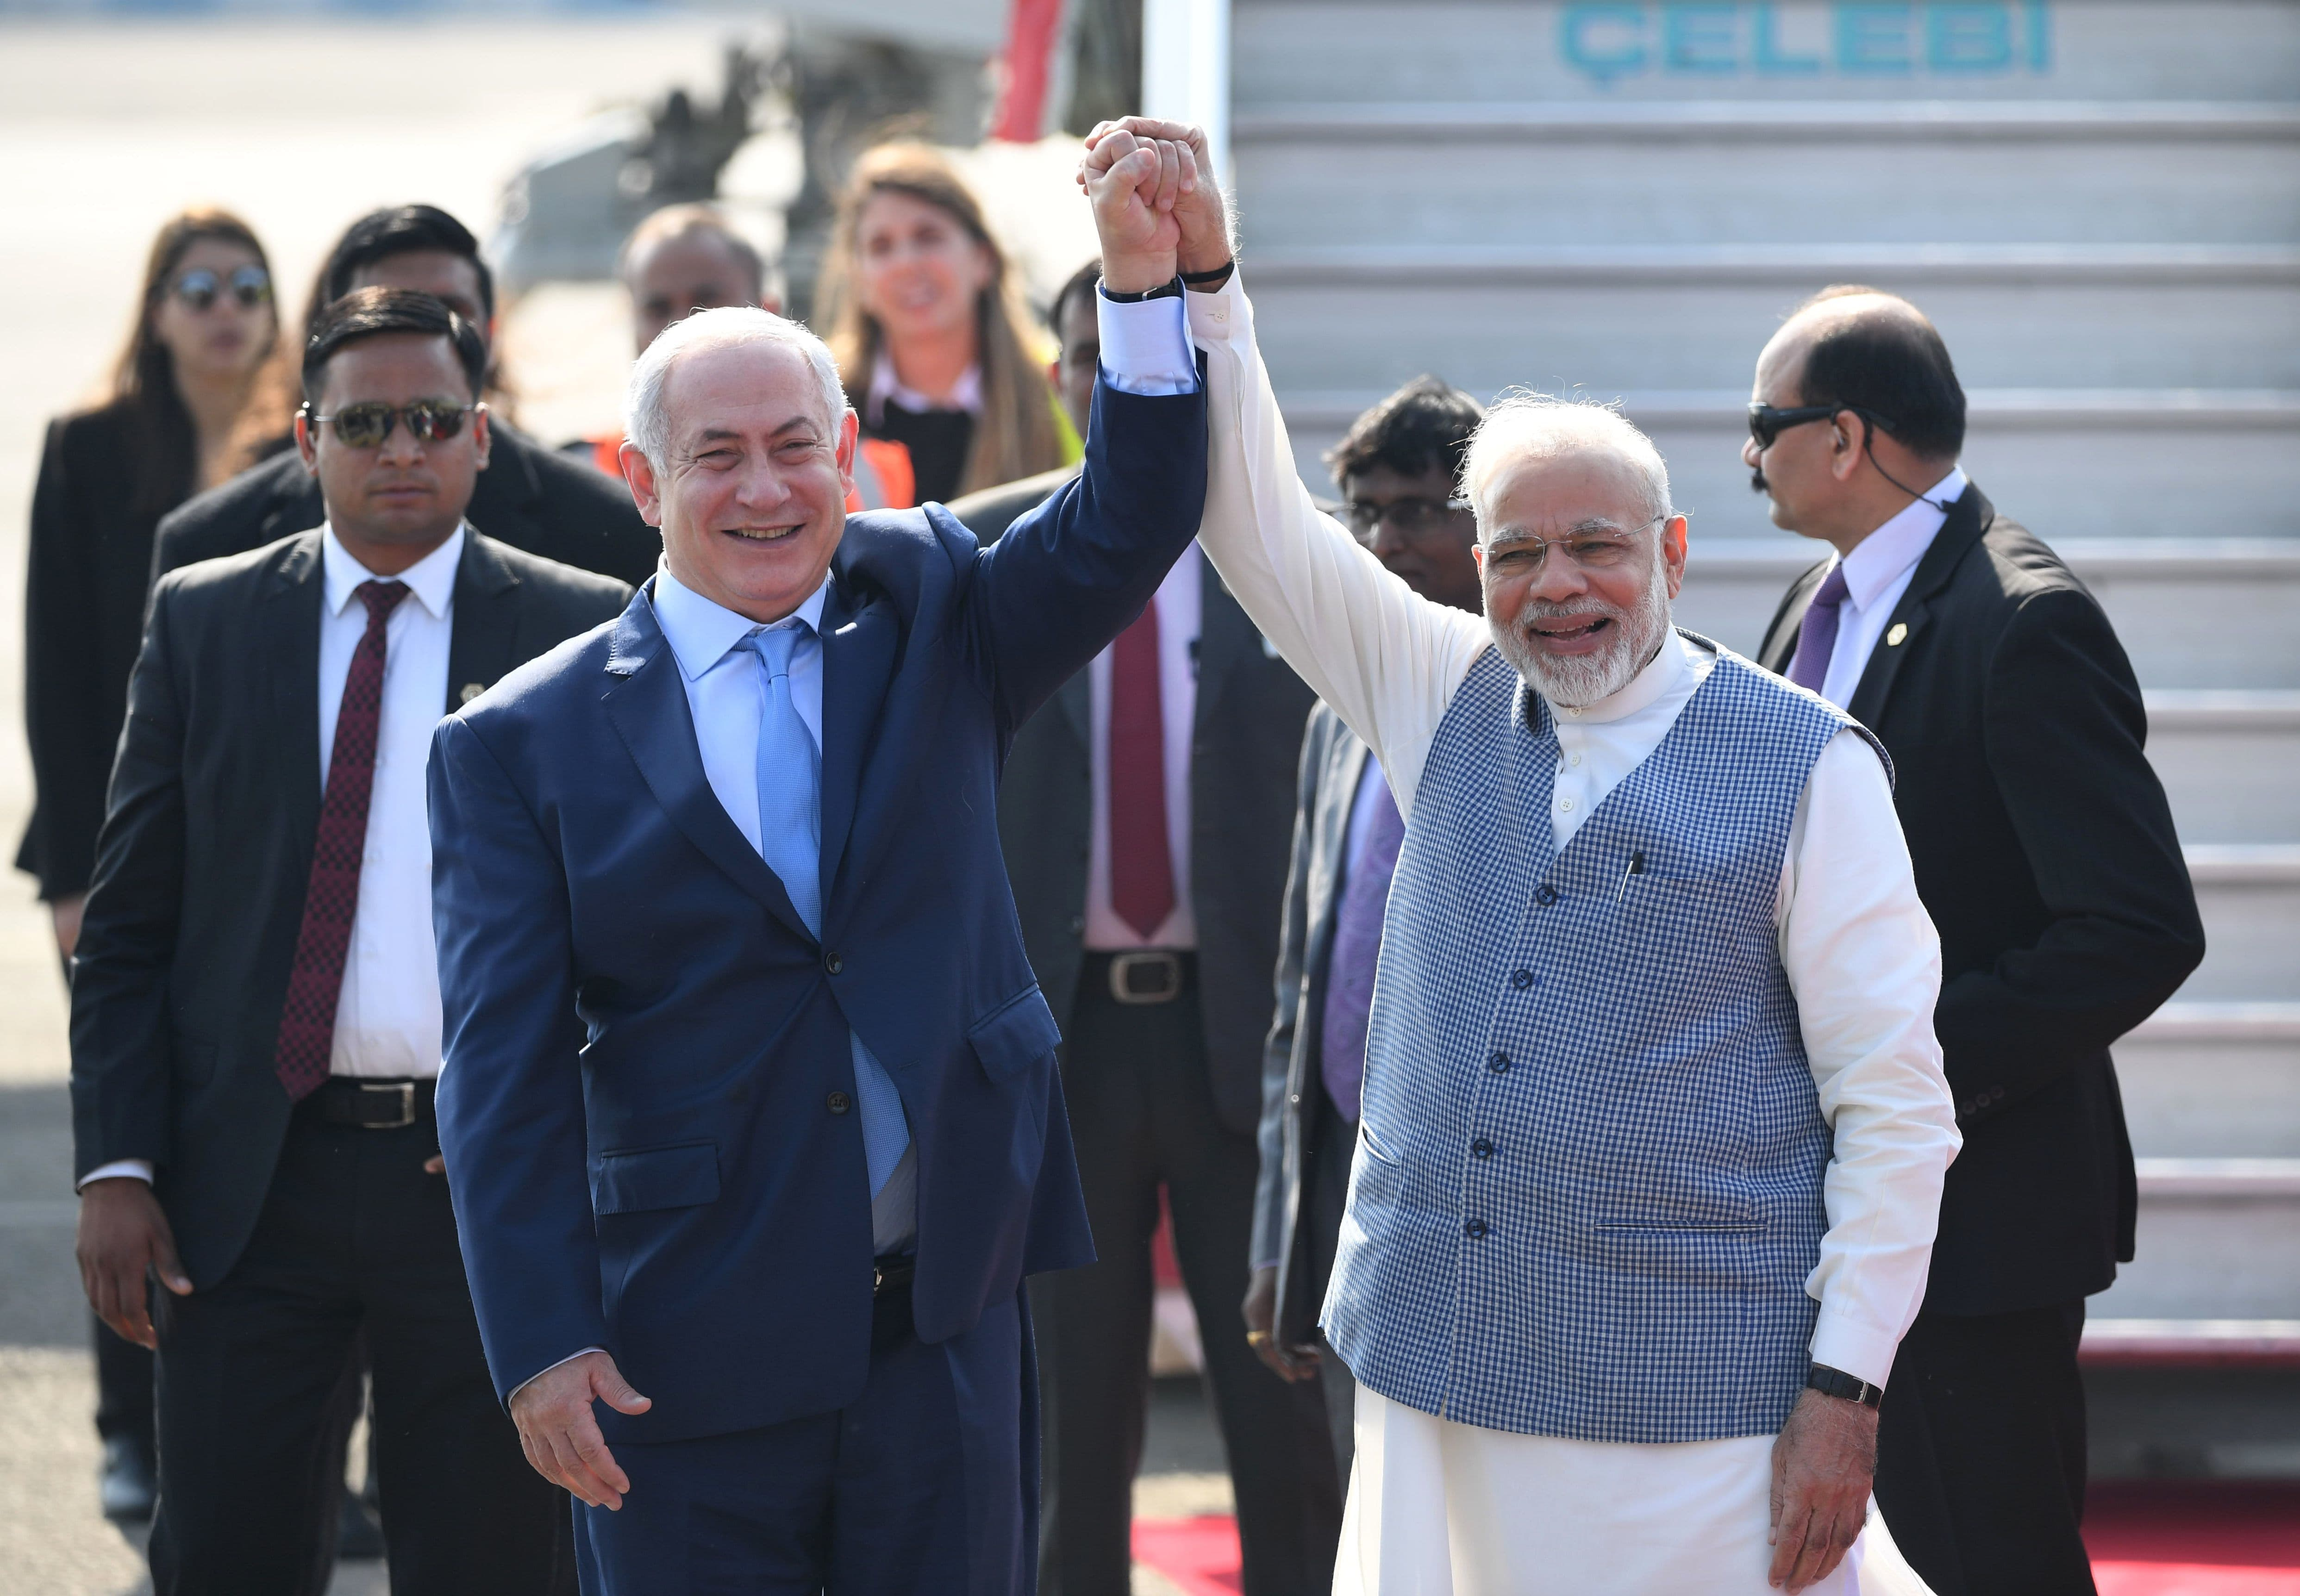 Indian PM Narendra Modi and Israeli PM Netanyahu pose for photographers after the latter arrived in New Delhi. — AFP